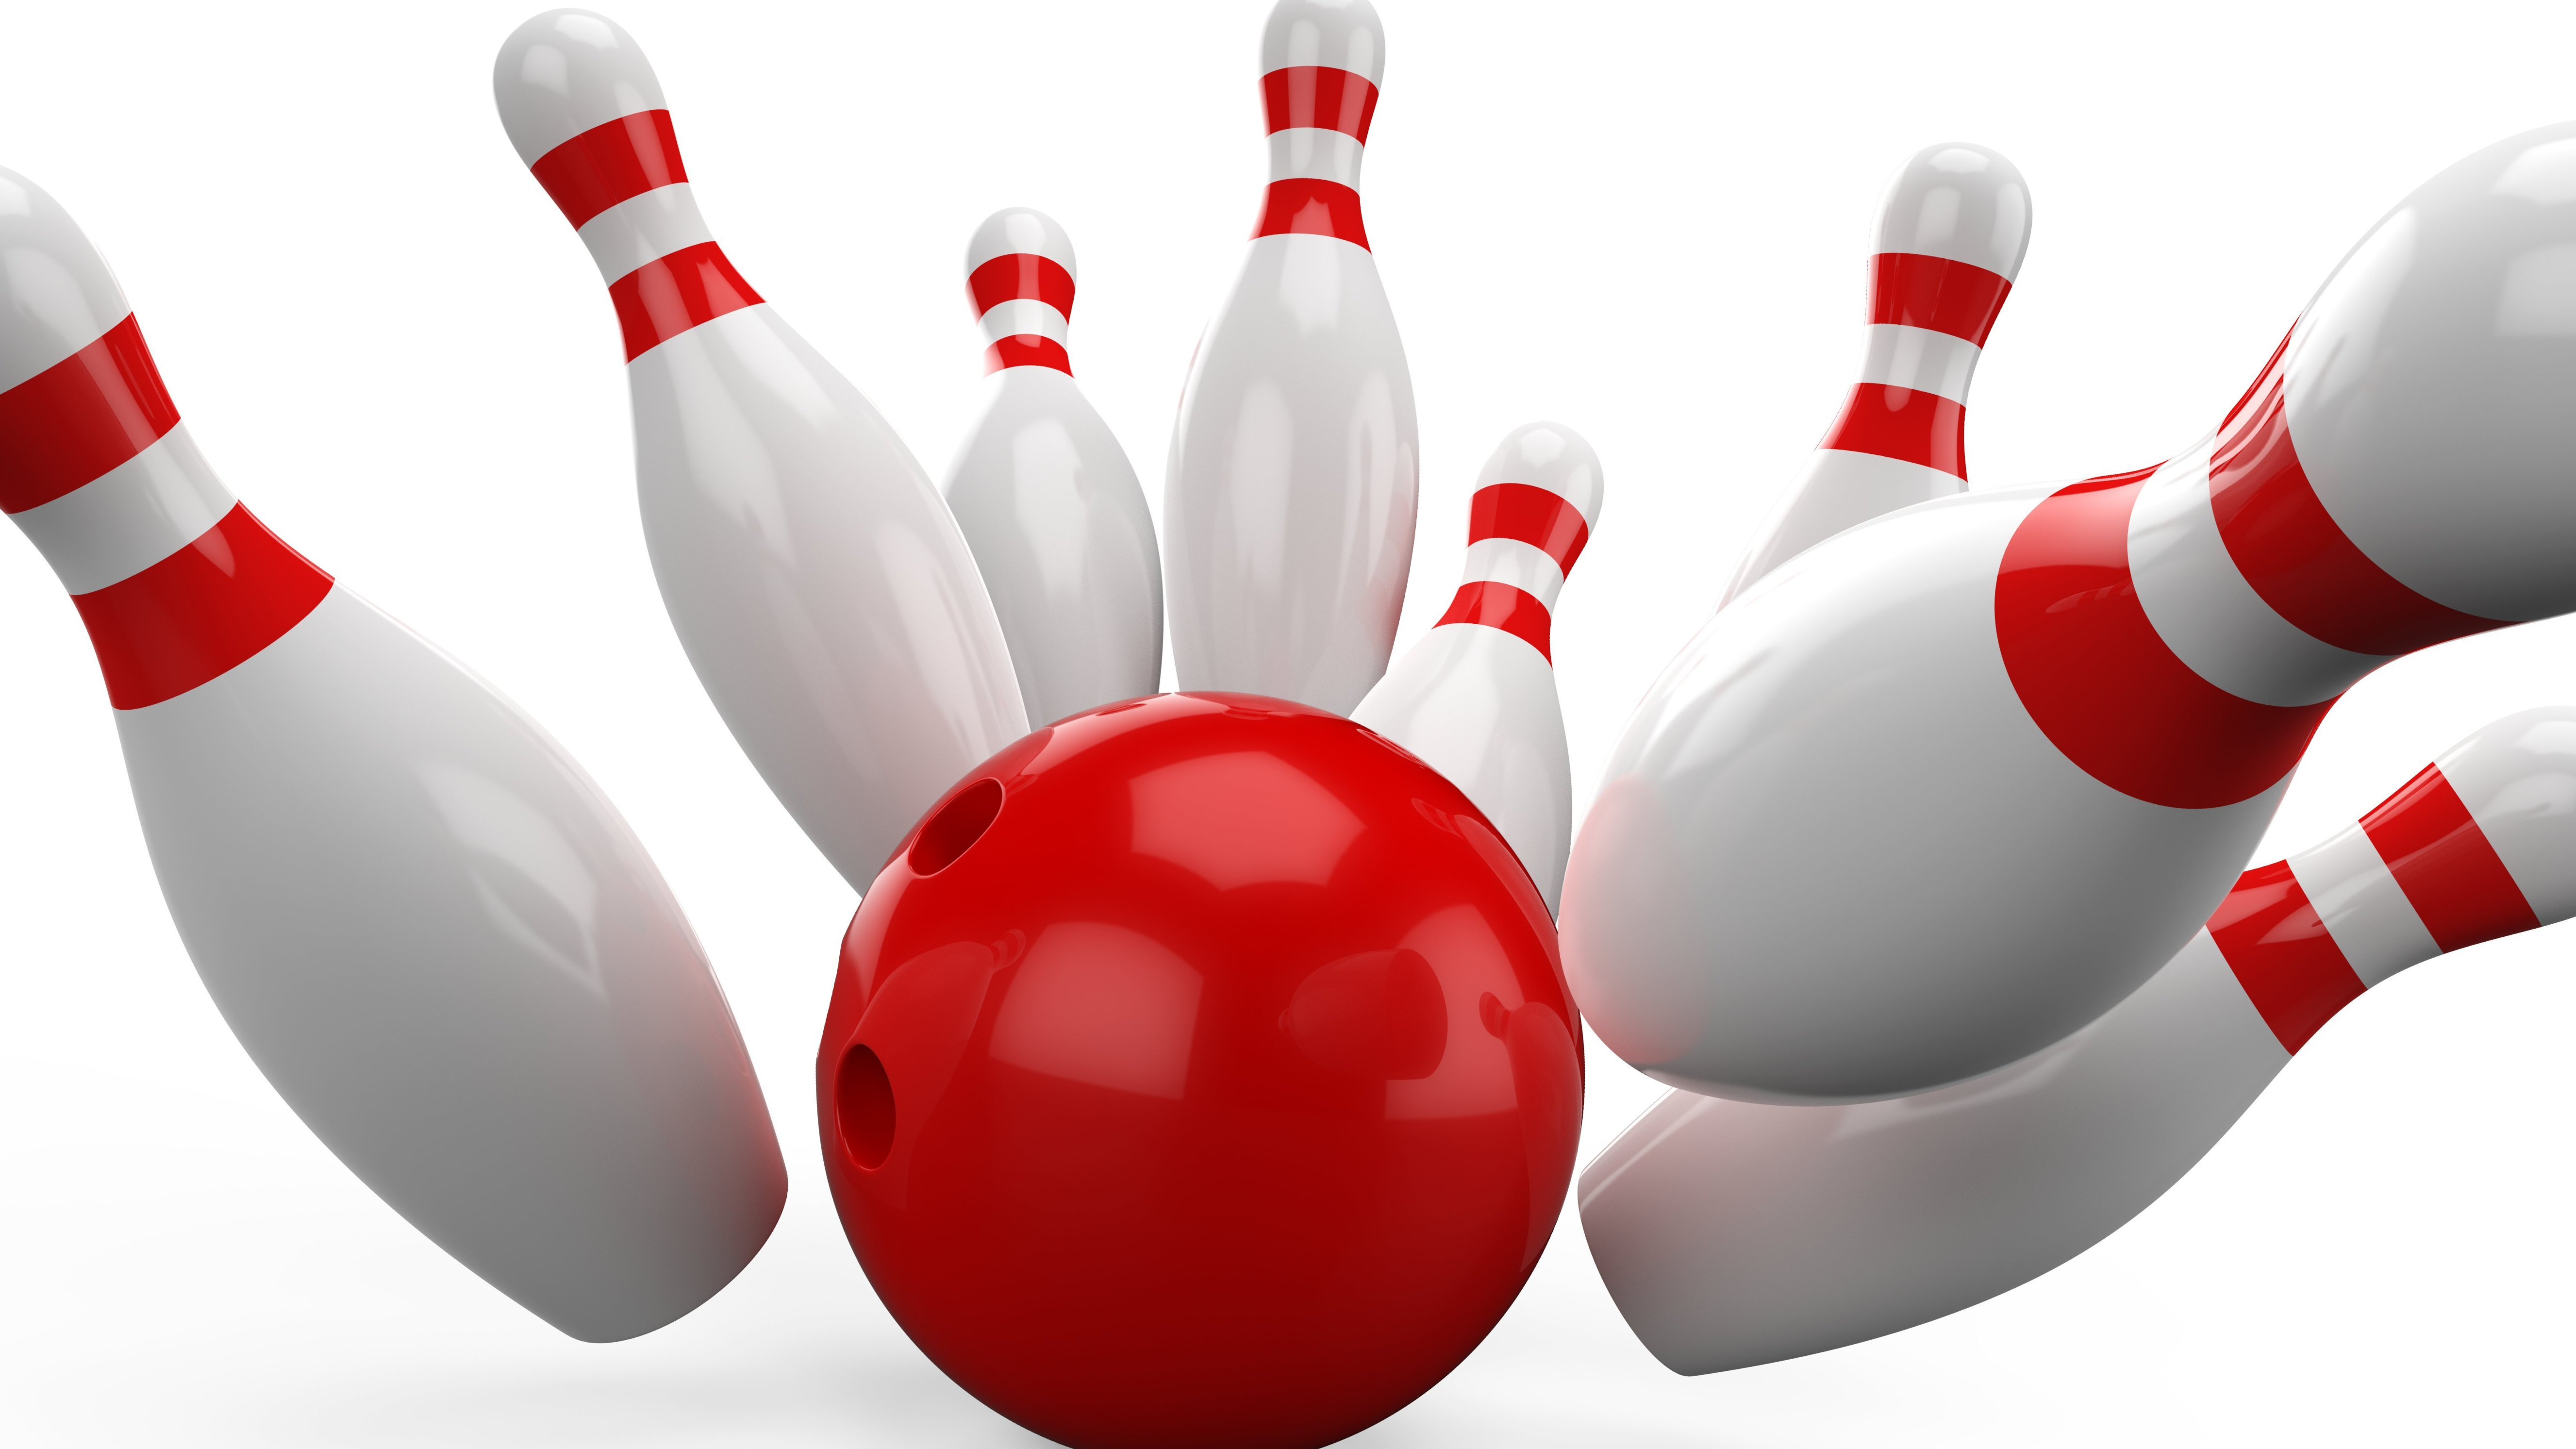 http://snelliusdispuut.nl/wp-content/uploads/2017/03/bowling.png